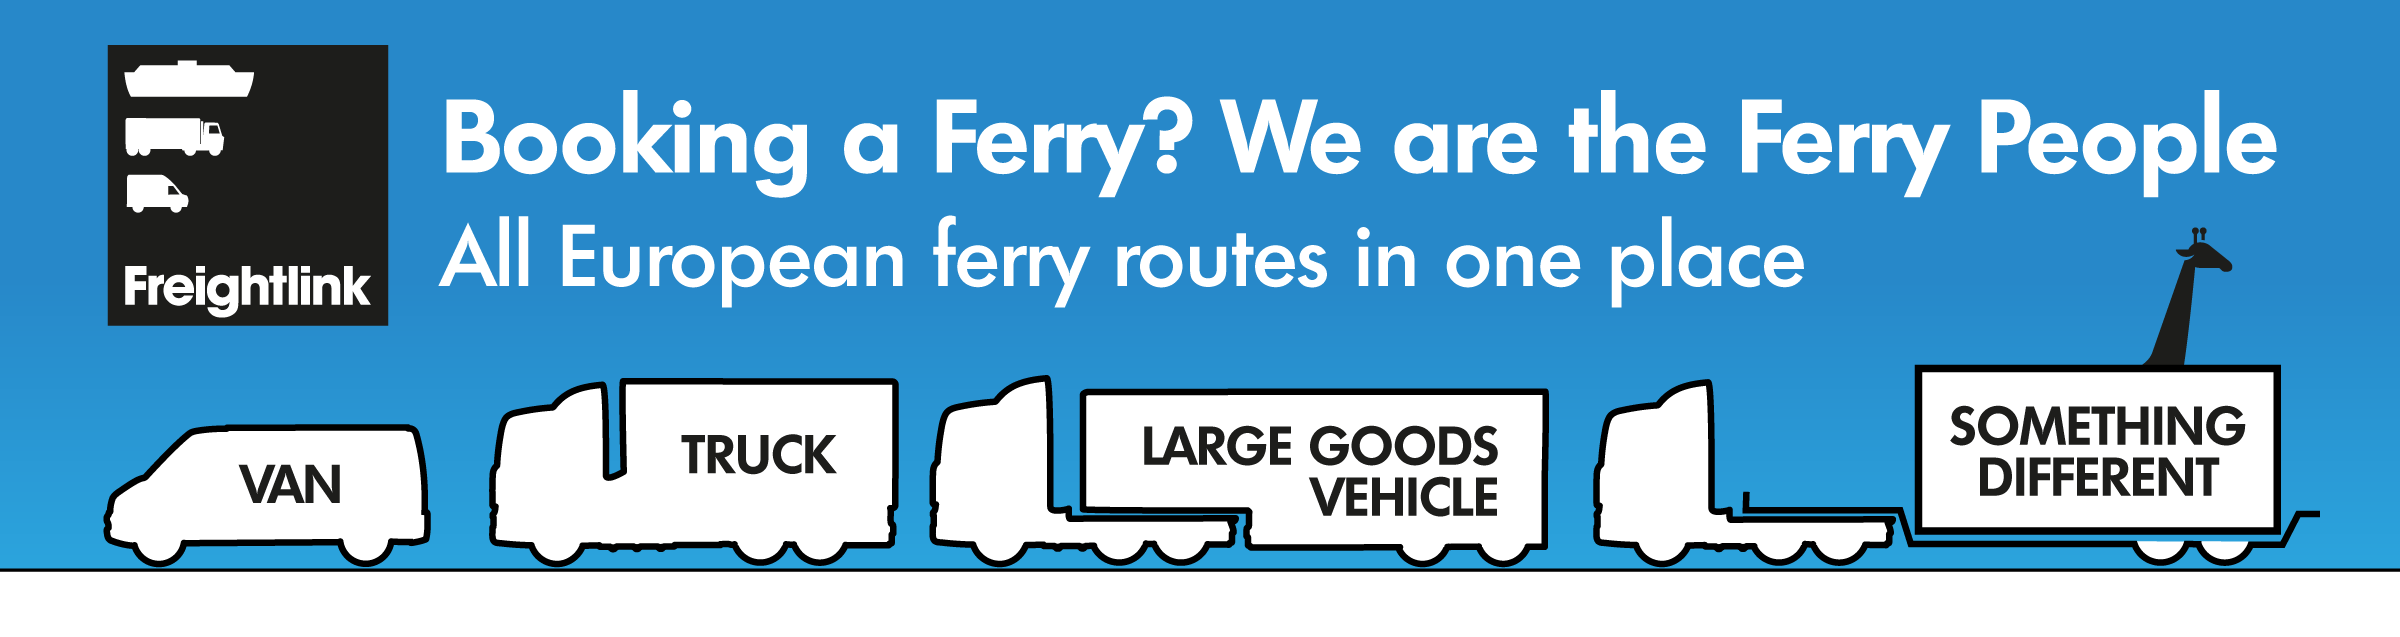 booking a ferry? We are the ferry people. All European ferry routes in one place